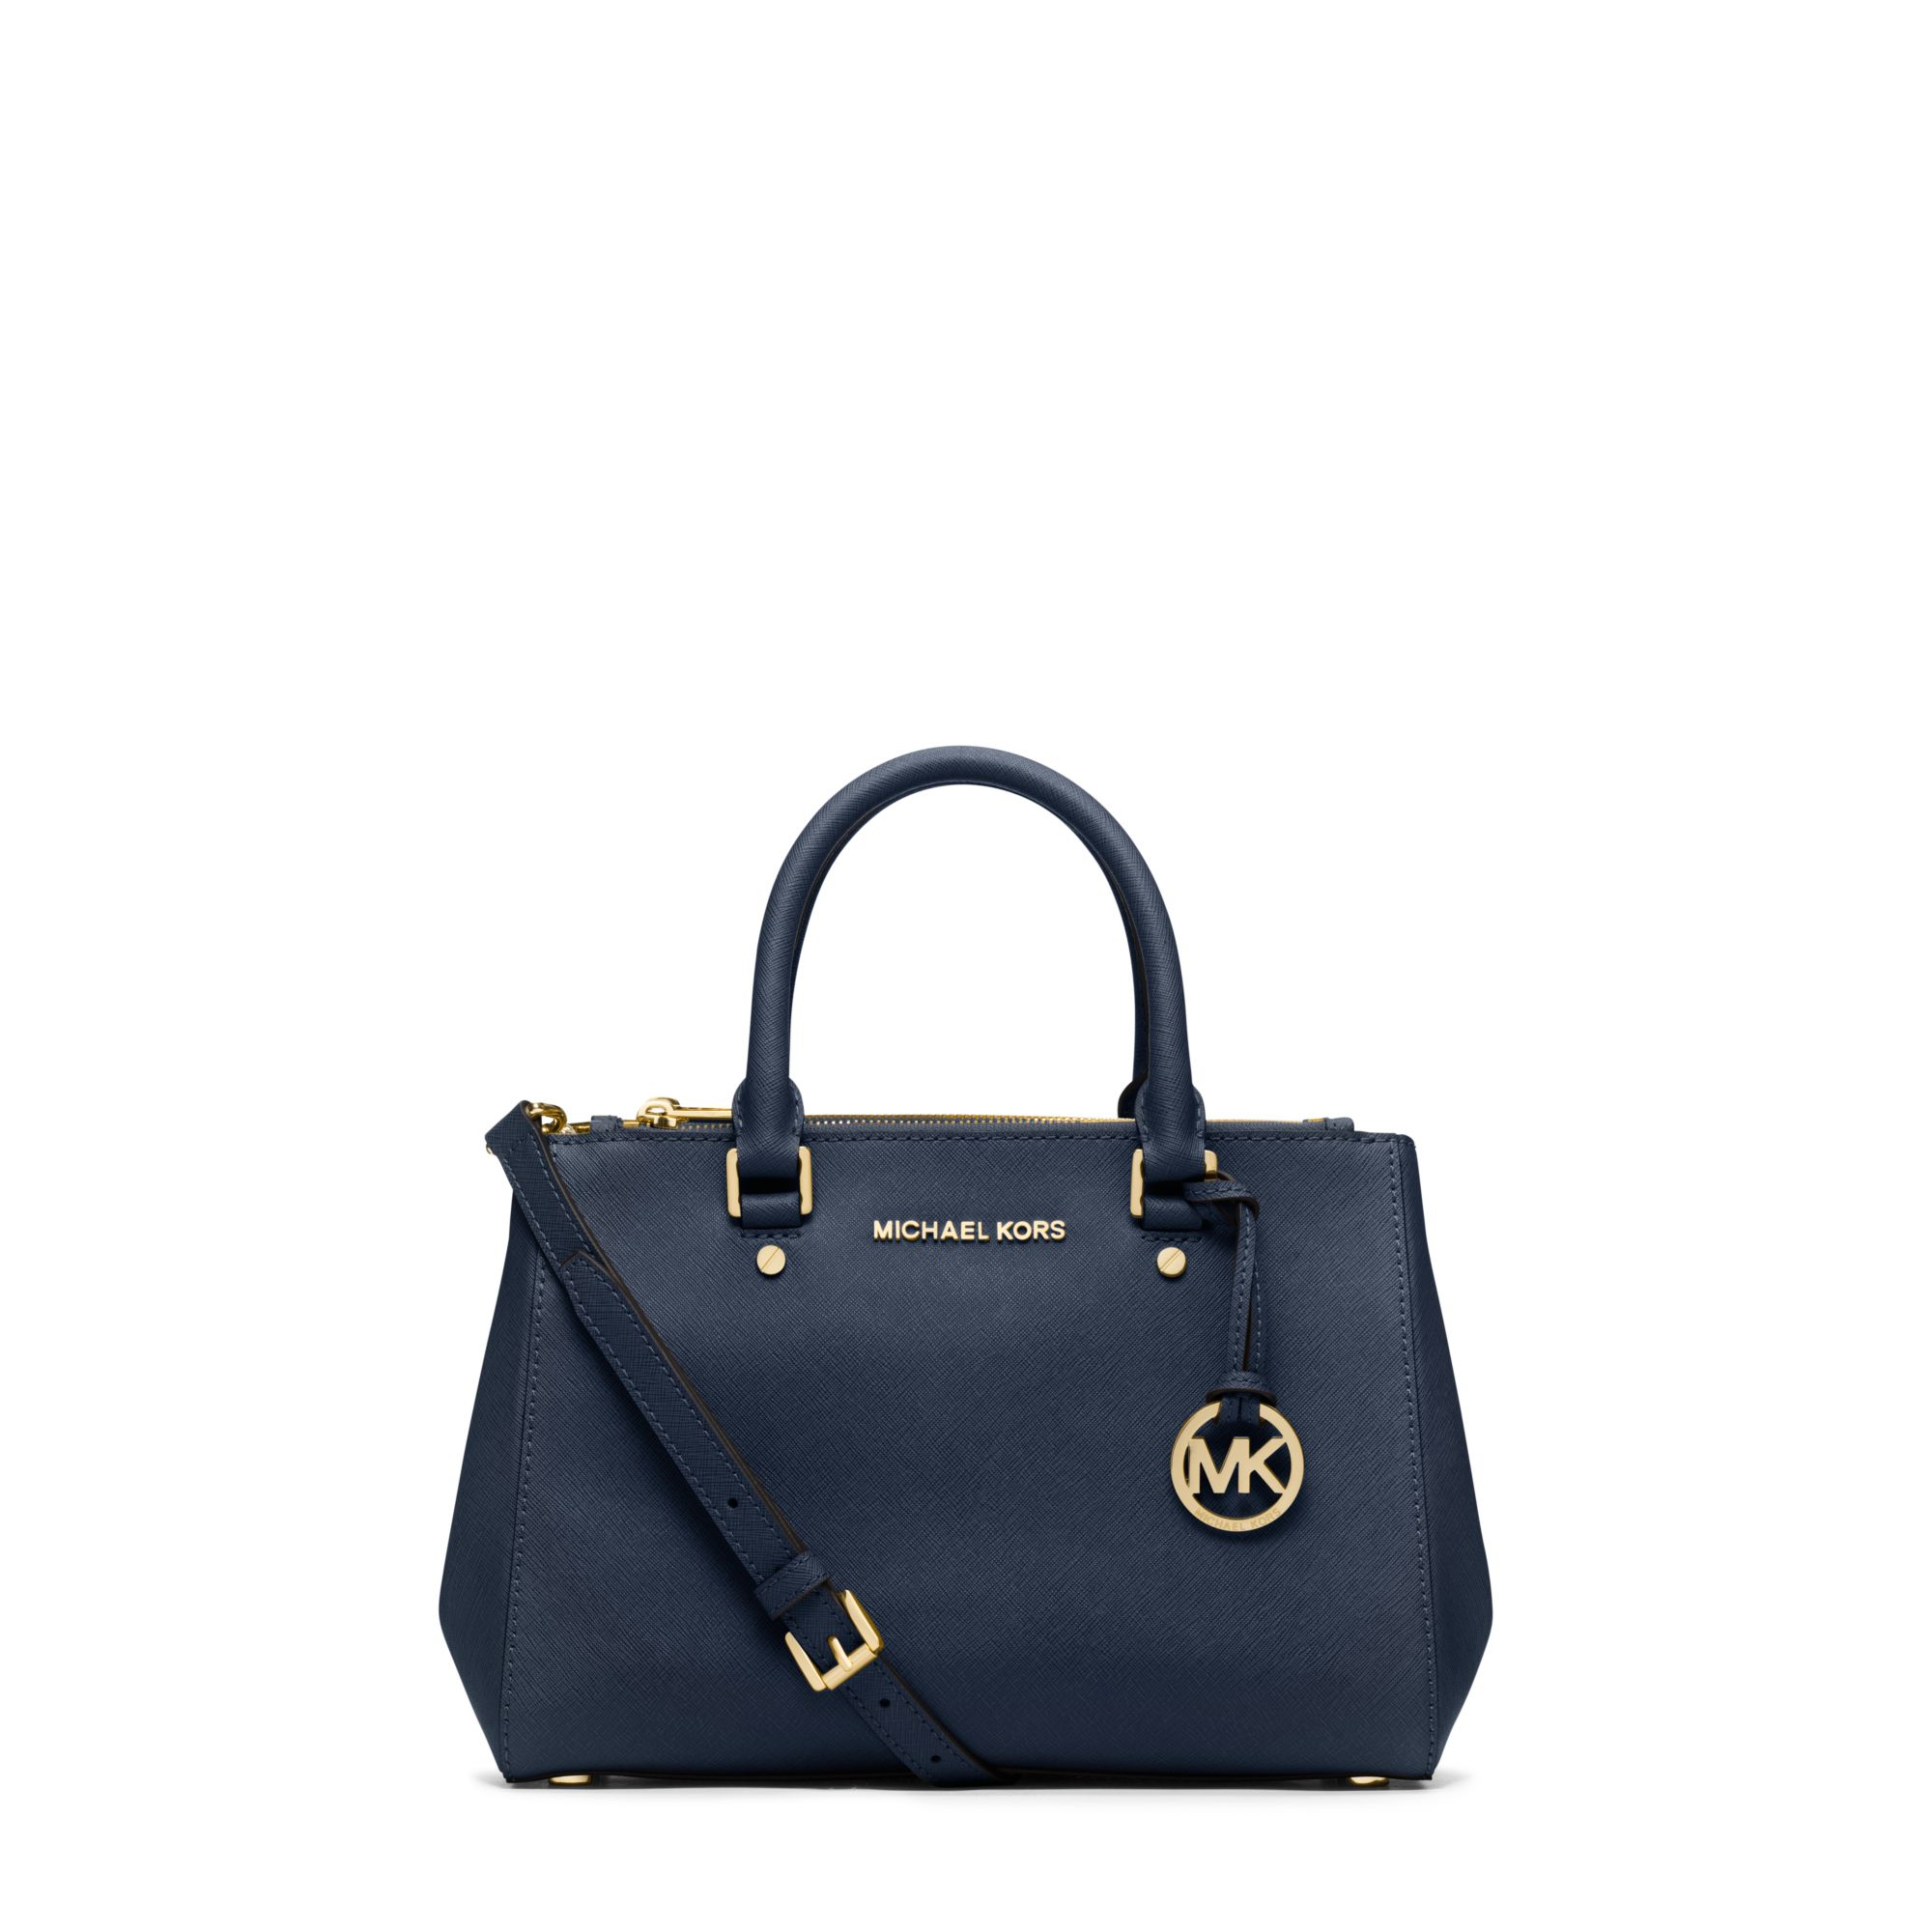 17349751ffe2d3 Michael Kors Sutton Small Saffiano Leather Satchel in Blue - Lyst